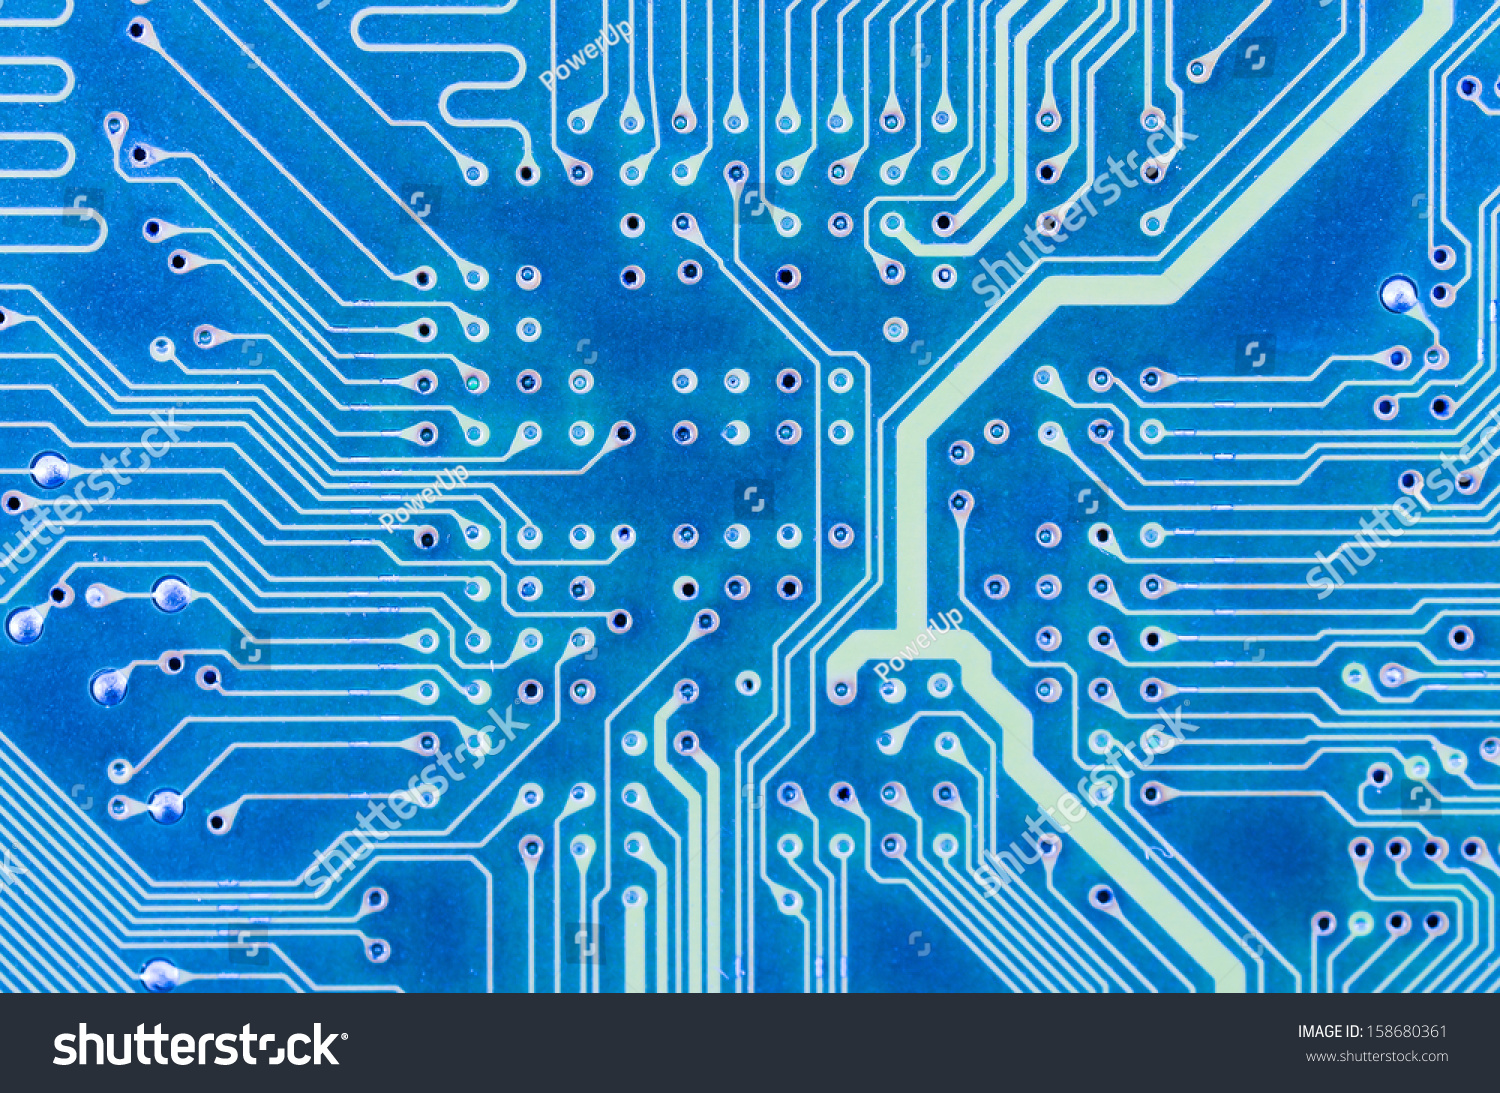 Close Up Of Printed Blue Computer Circuit Board Ez Canvas The